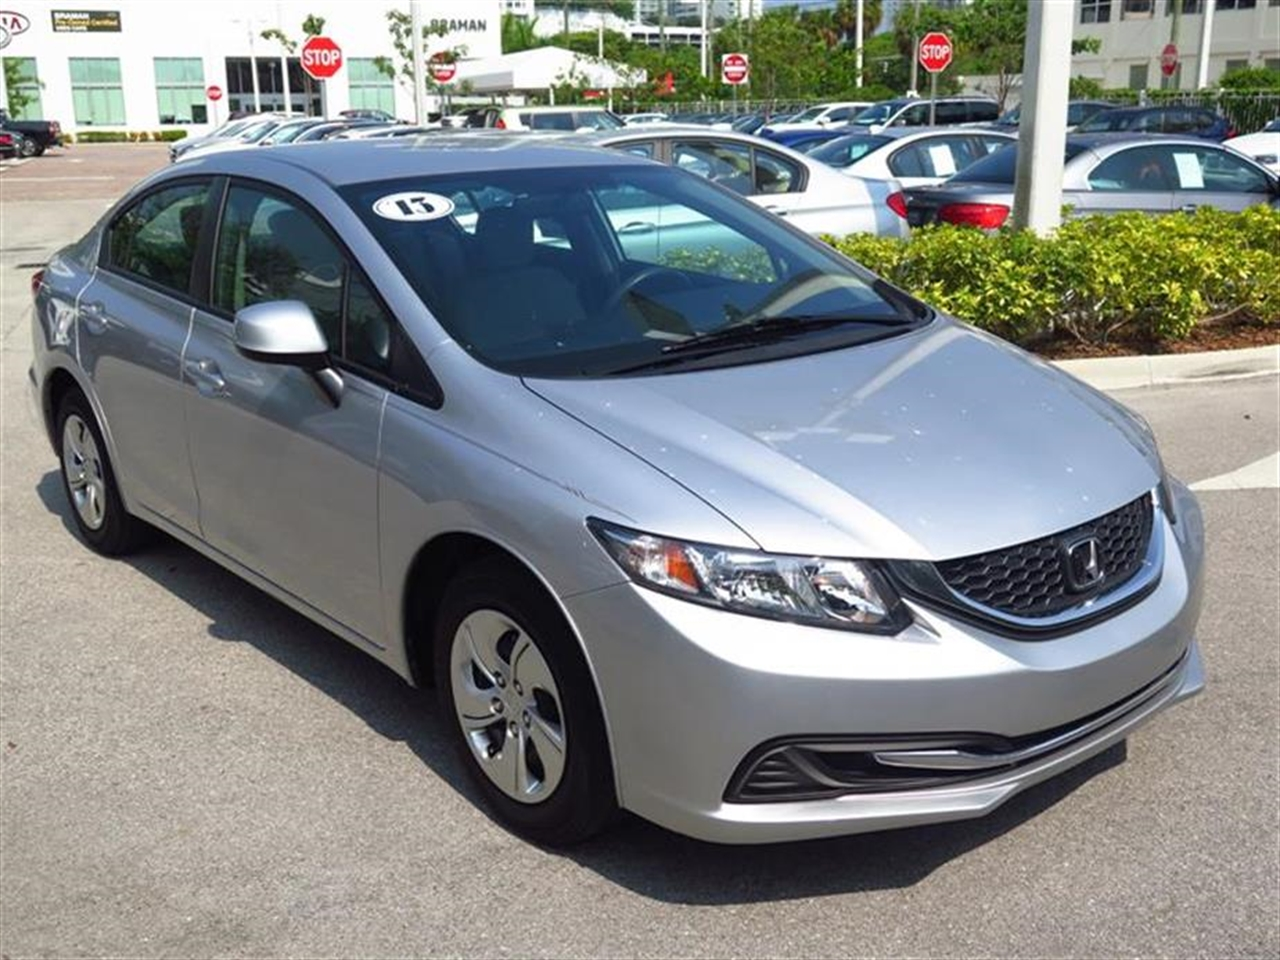 2013 HONDA CIVIC 4dr Auto LX 11826 miles 2-tier instrument panel wblue backlit gauges -inc tach